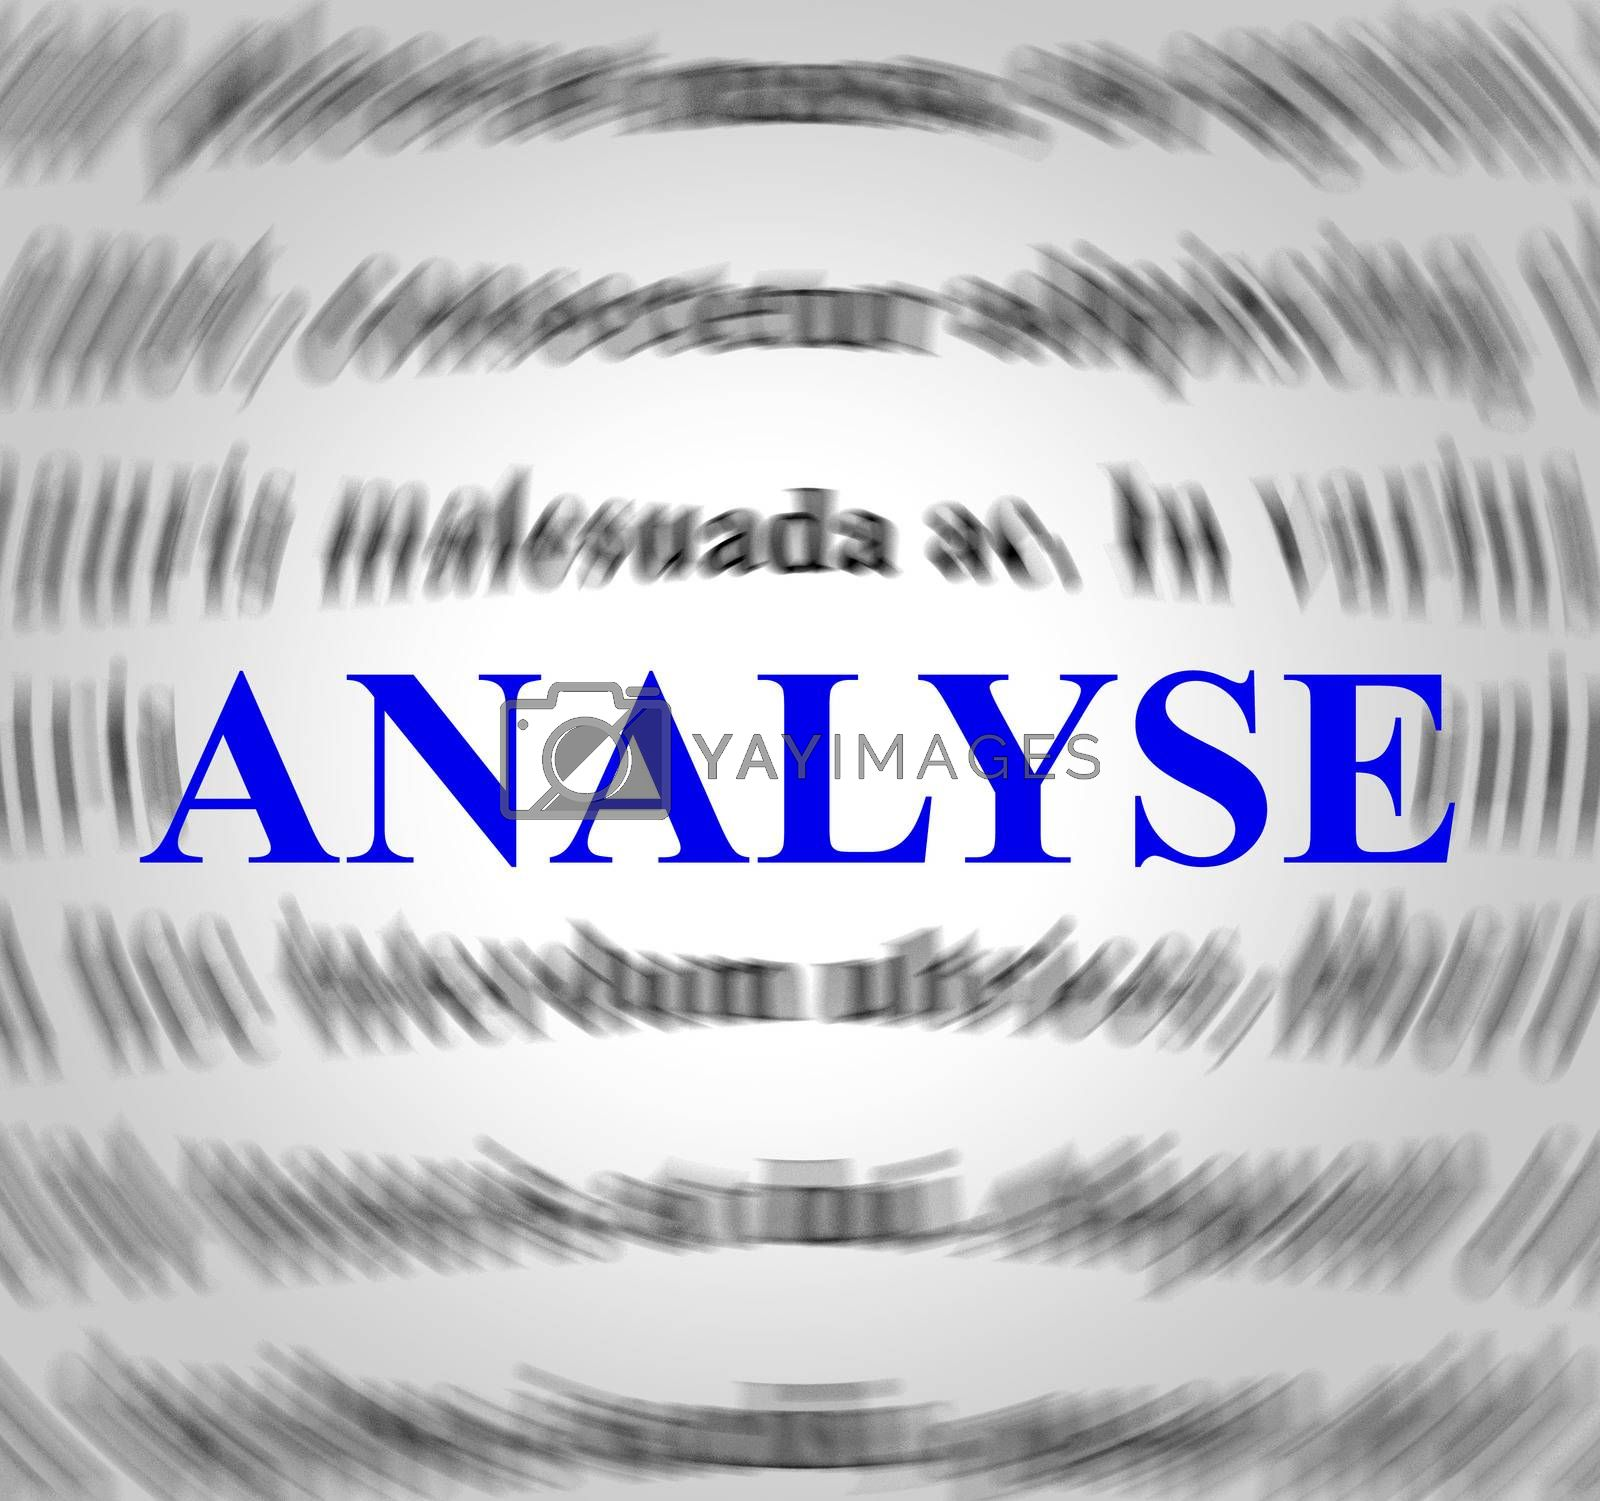 Analyse Definition Represents Data Analytics And Analysis by stuartmiles